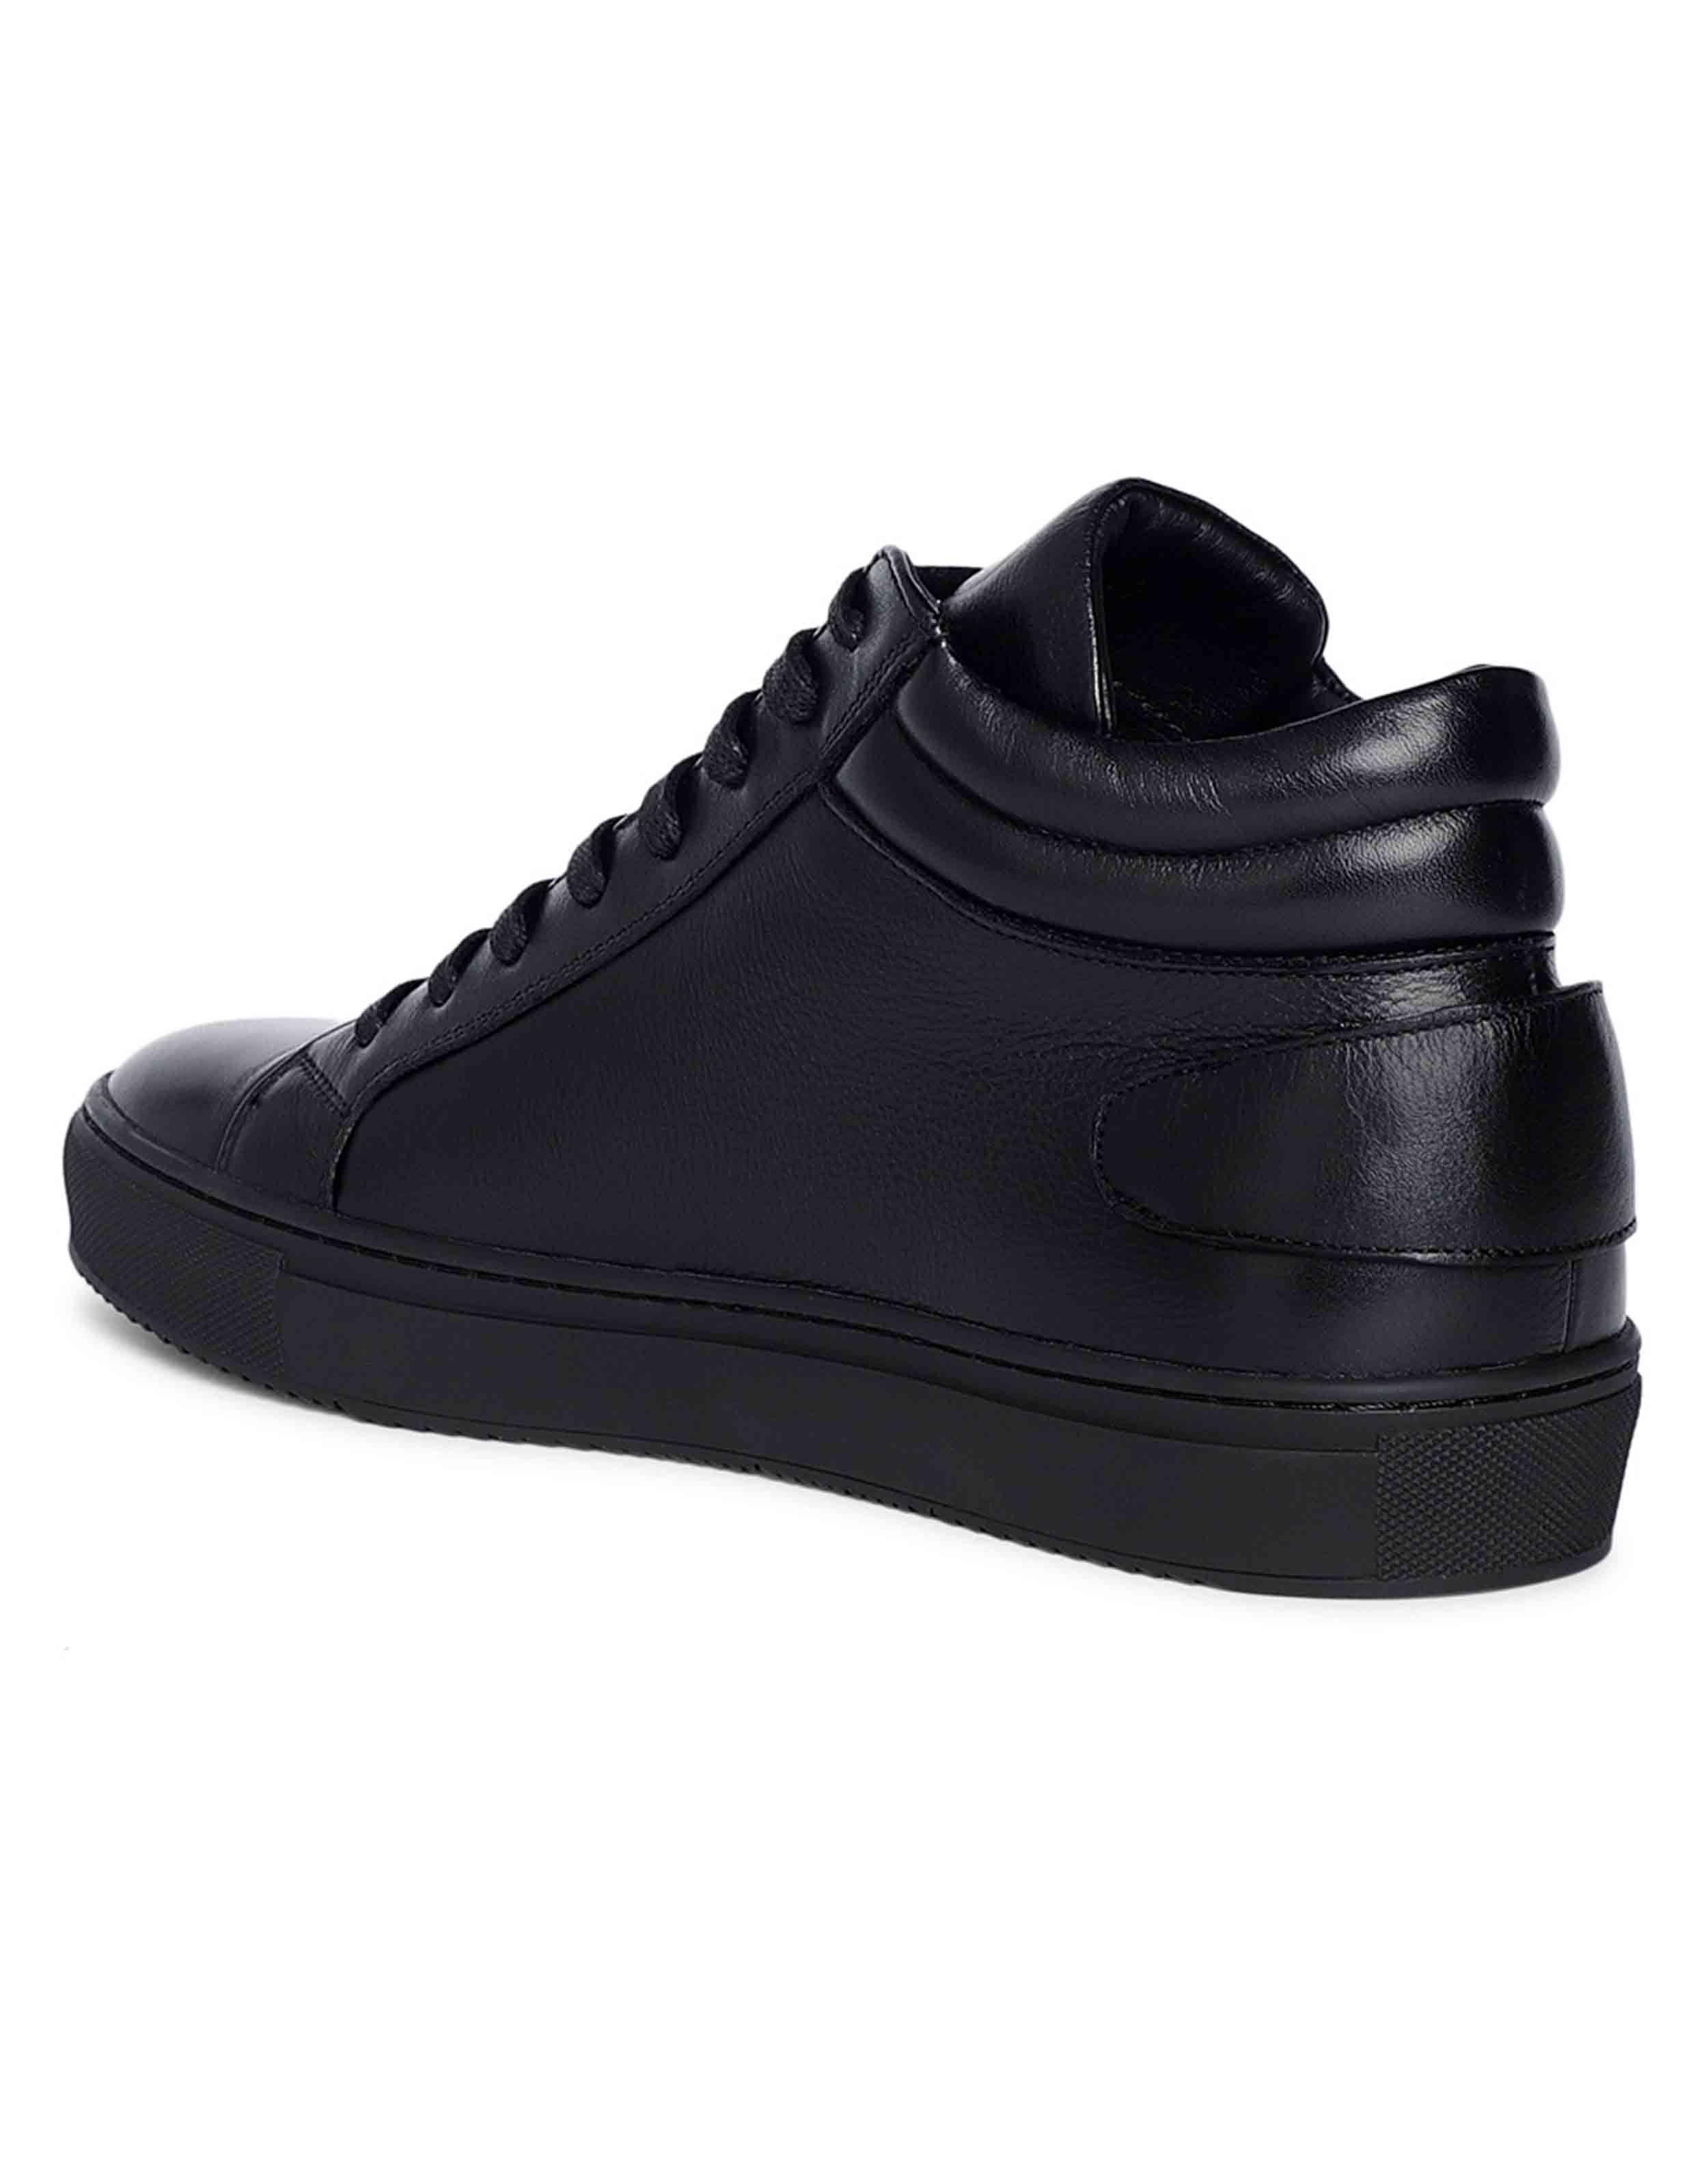 Black High Top Sneaker 3